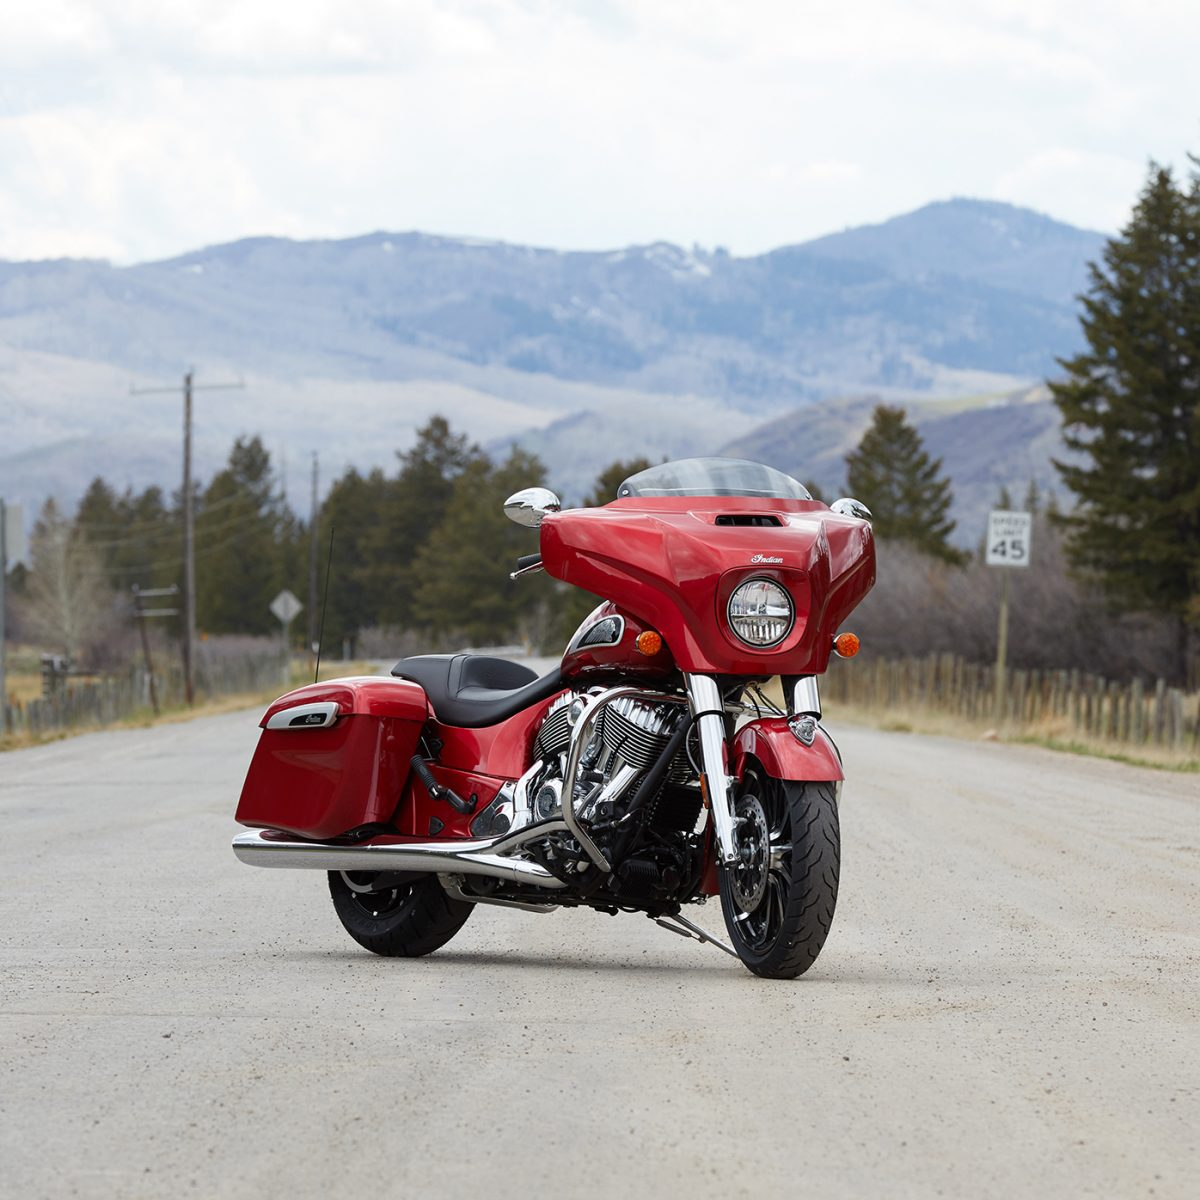 2019 Indian Chieftain Limited6